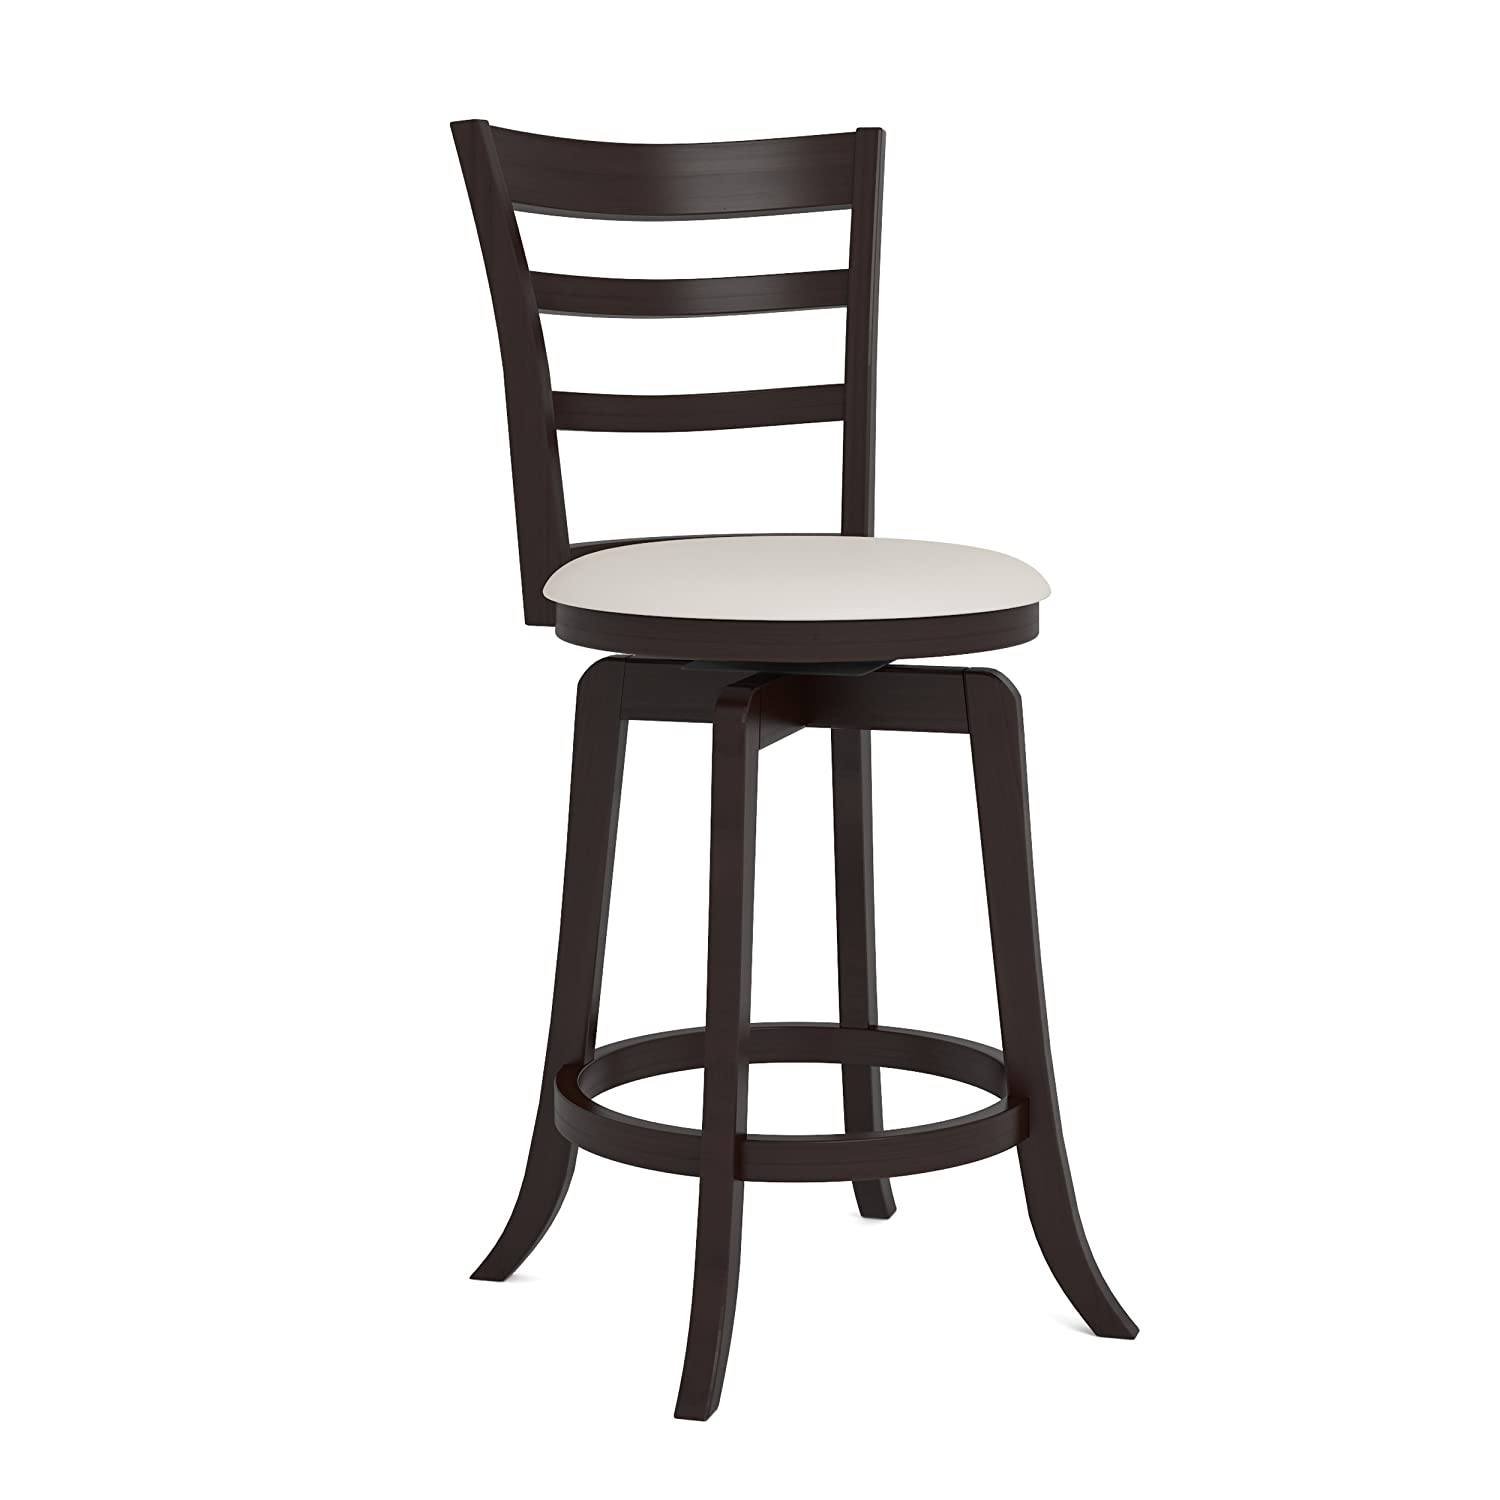 Amazon.com CorLiving DWG-494-B Woodgrove Three Bar Design Wooden Barstool 38-Inch Espresso and Cream Leatherette Kitchen u0026 Dining  sc 1 st  Amazon.com & Amazon.com: CorLiving DWG-494-B Woodgrove Three Bar Design Wooden ... islam-shia.org